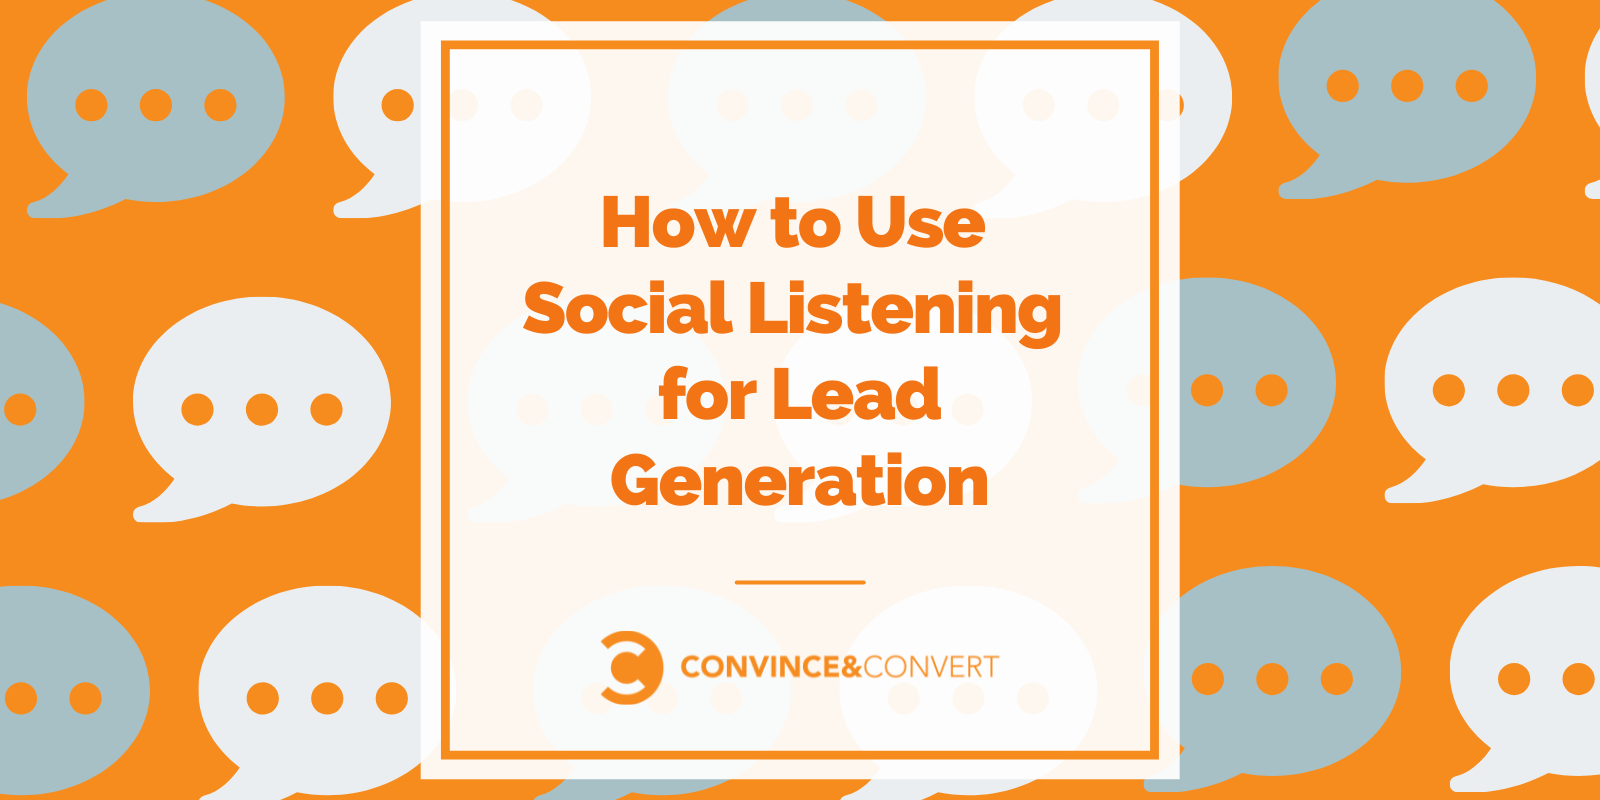 How to Use Social Listening for Lead Generation